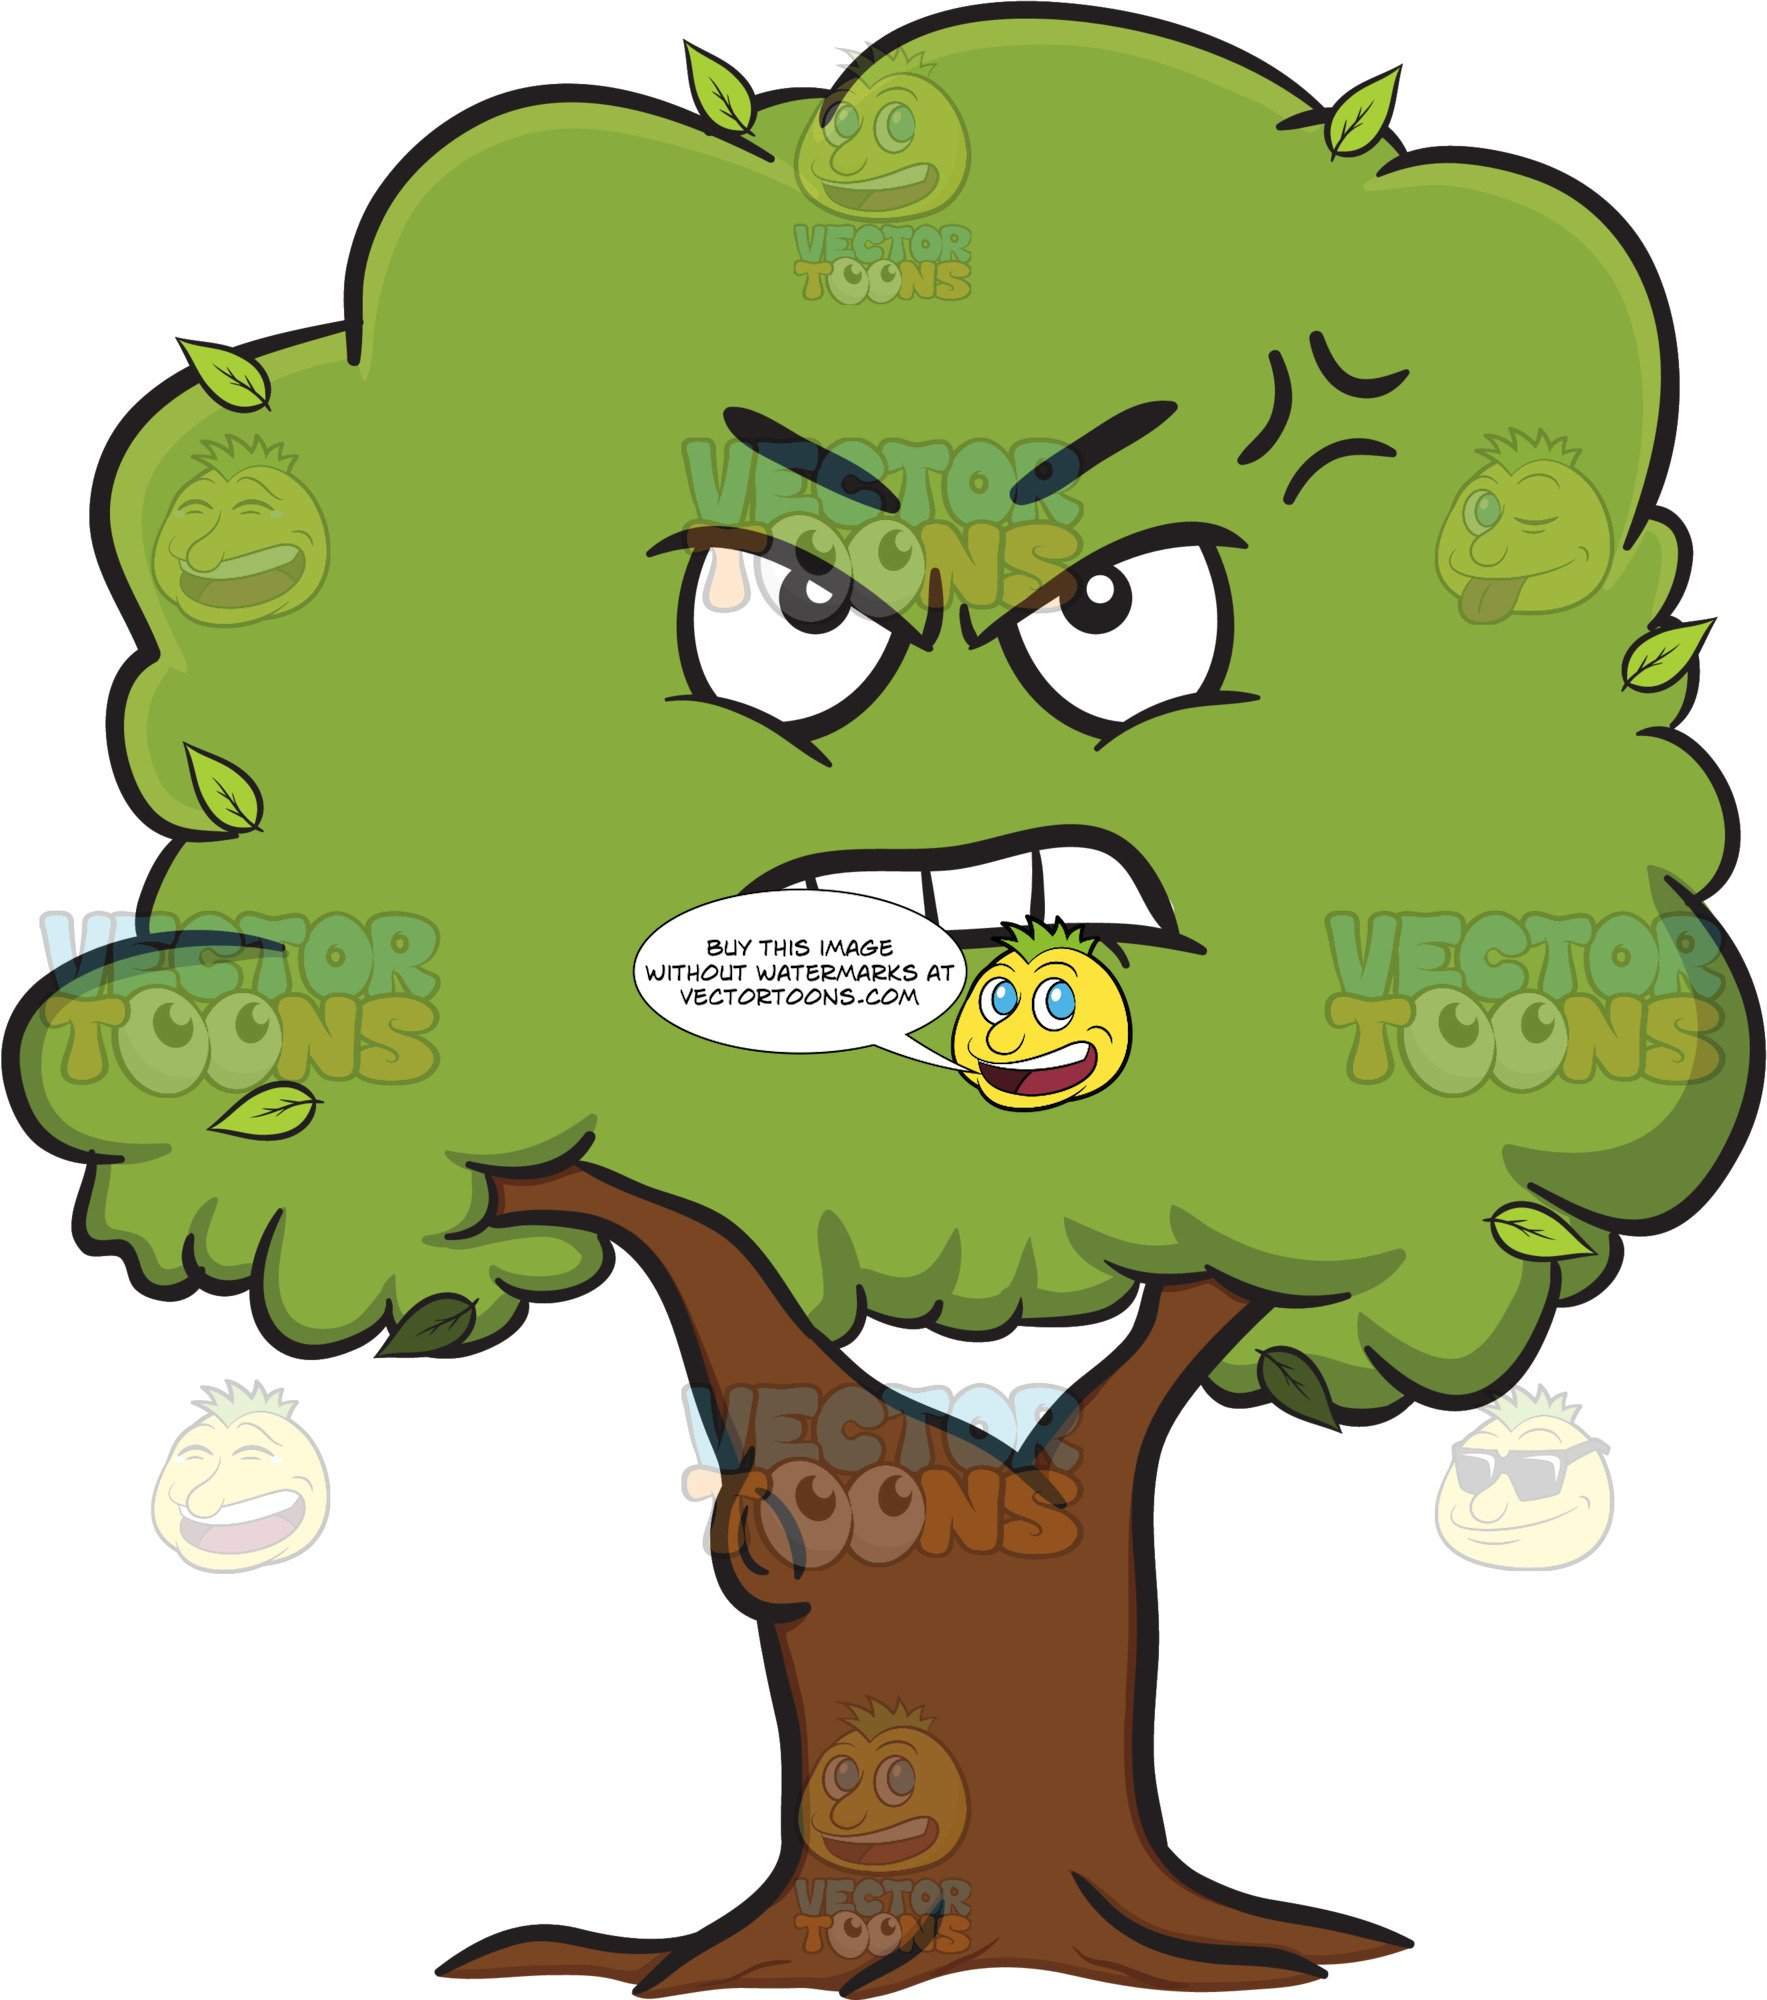 3 trees connected by roots clipart graphic free library Bruised And Mad Leafy Tree Emoji graphic free library